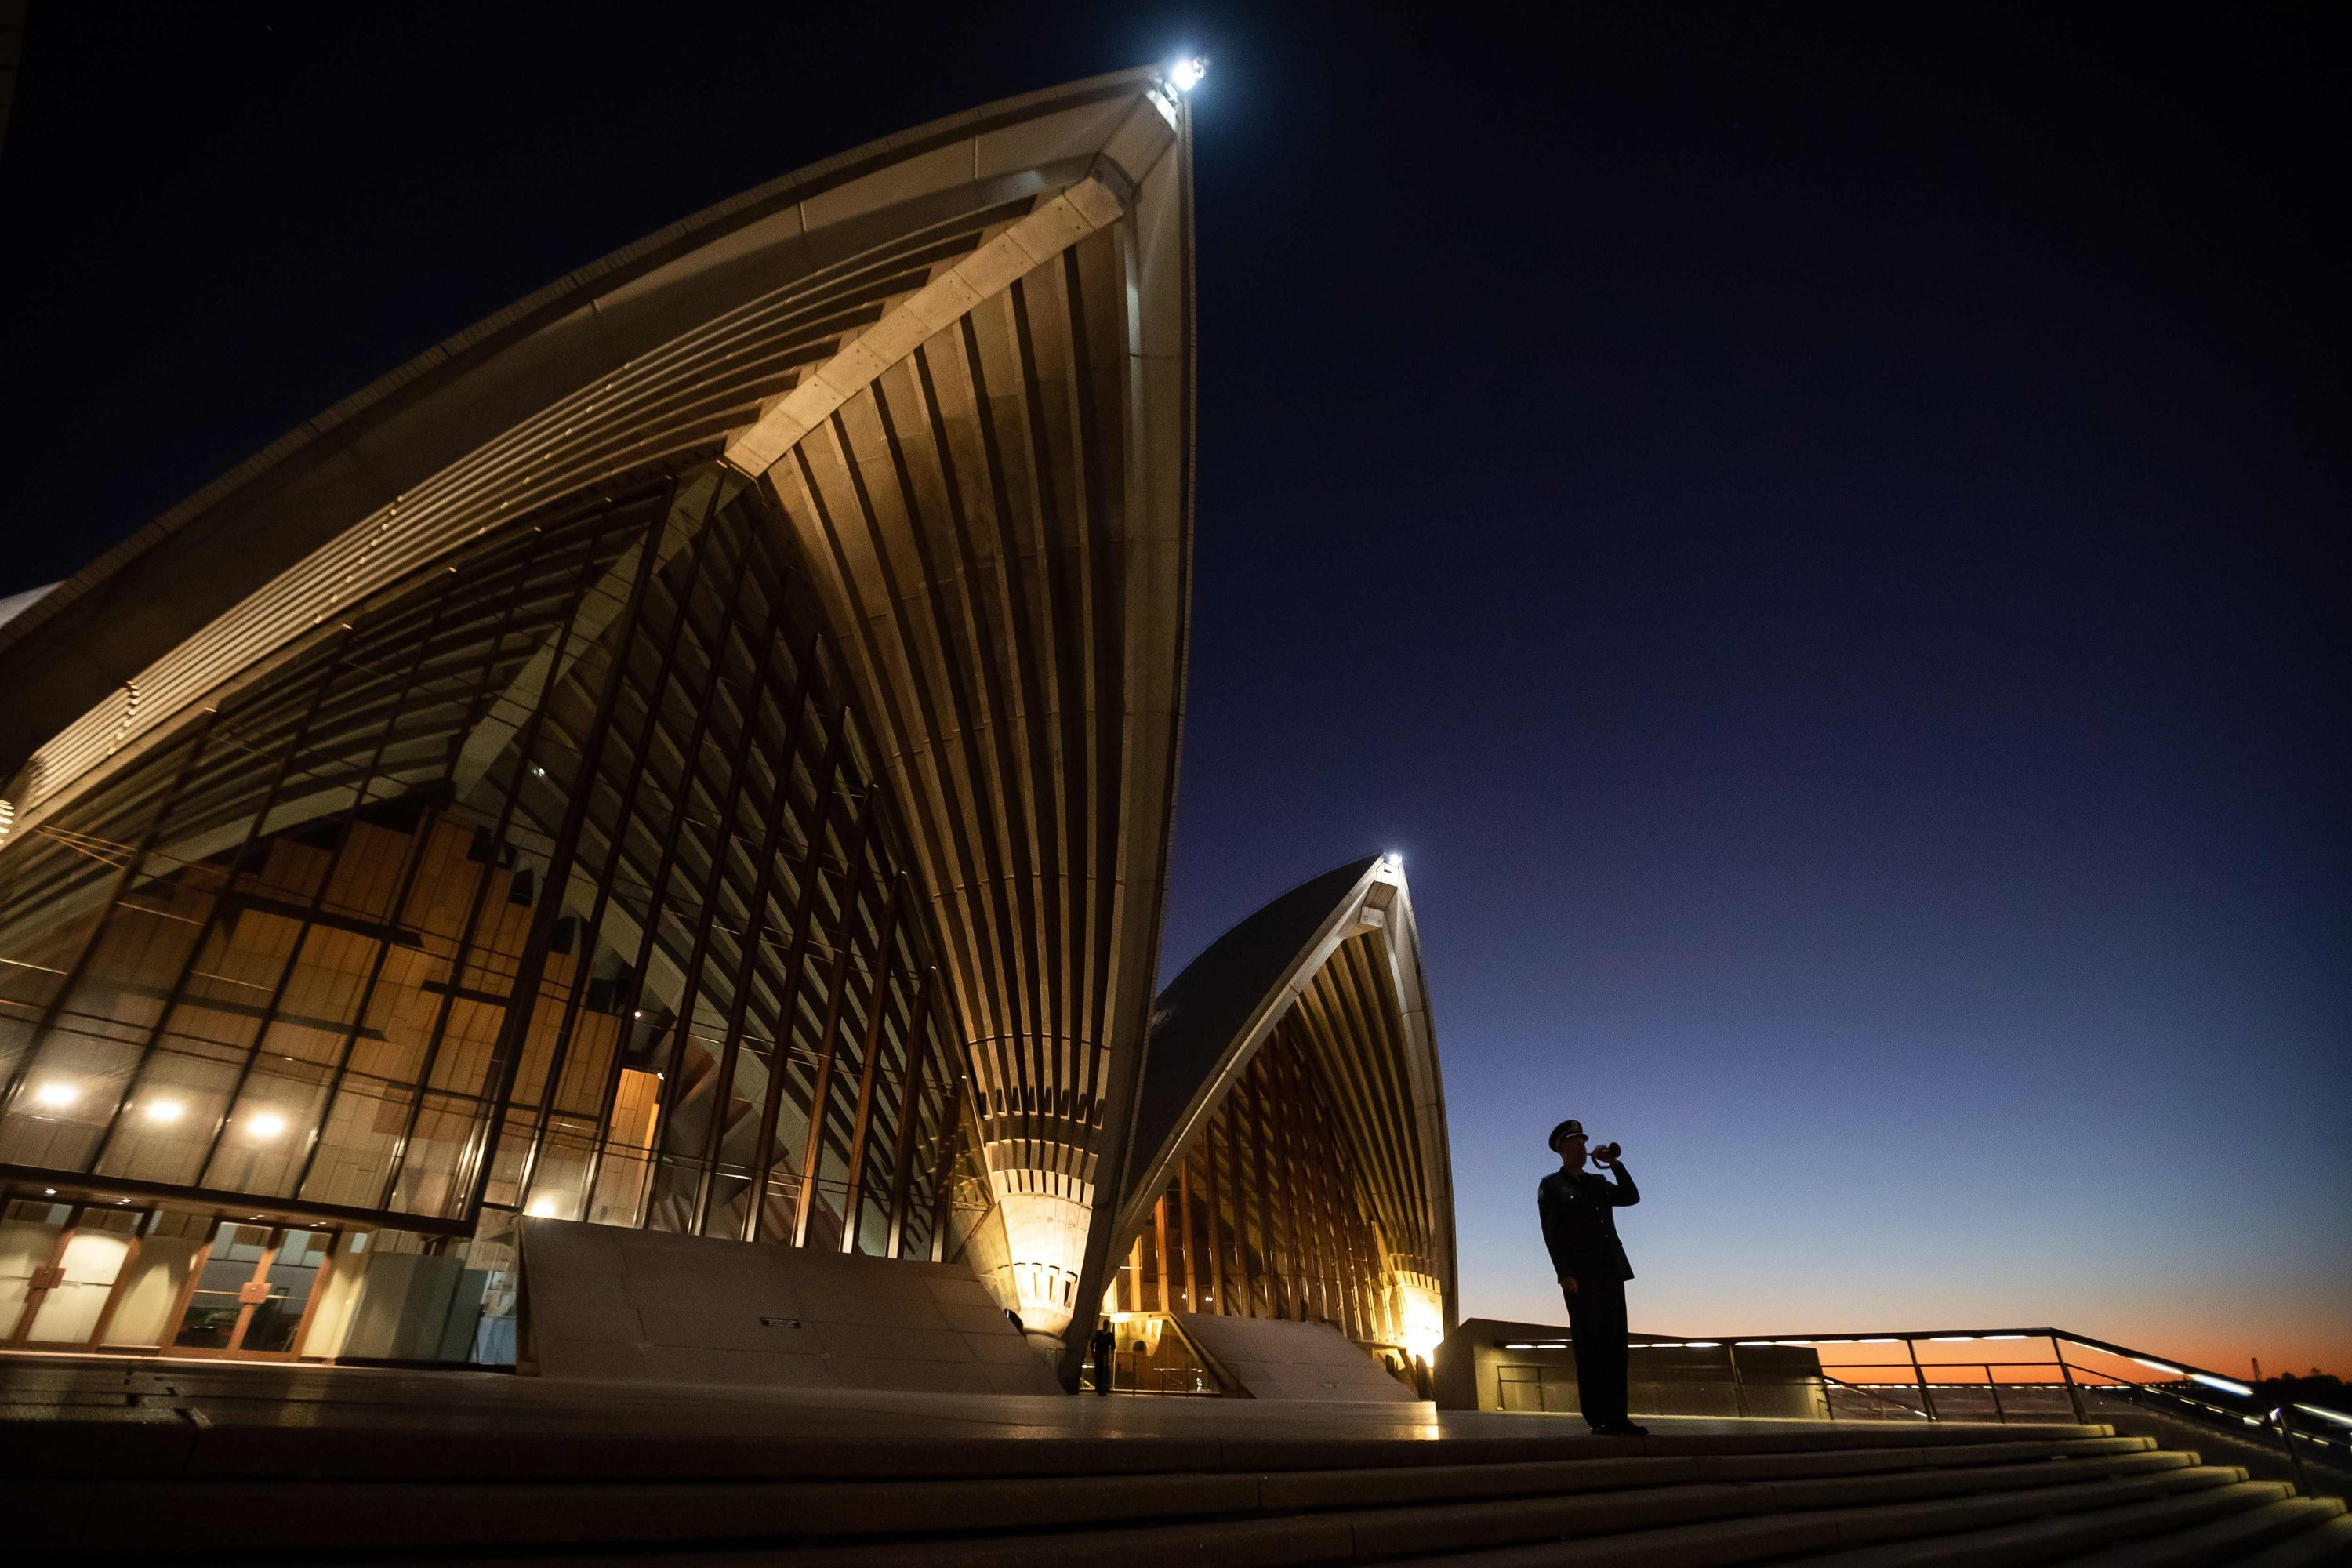 This handout picture taken and released on April 25, 2020 by the Sydney Opera House shows a lone bugler playing The Last Post on the steps of the Sydney Opera House. (Photo by Daniel BOUD / Sydney Opera House / AFP)